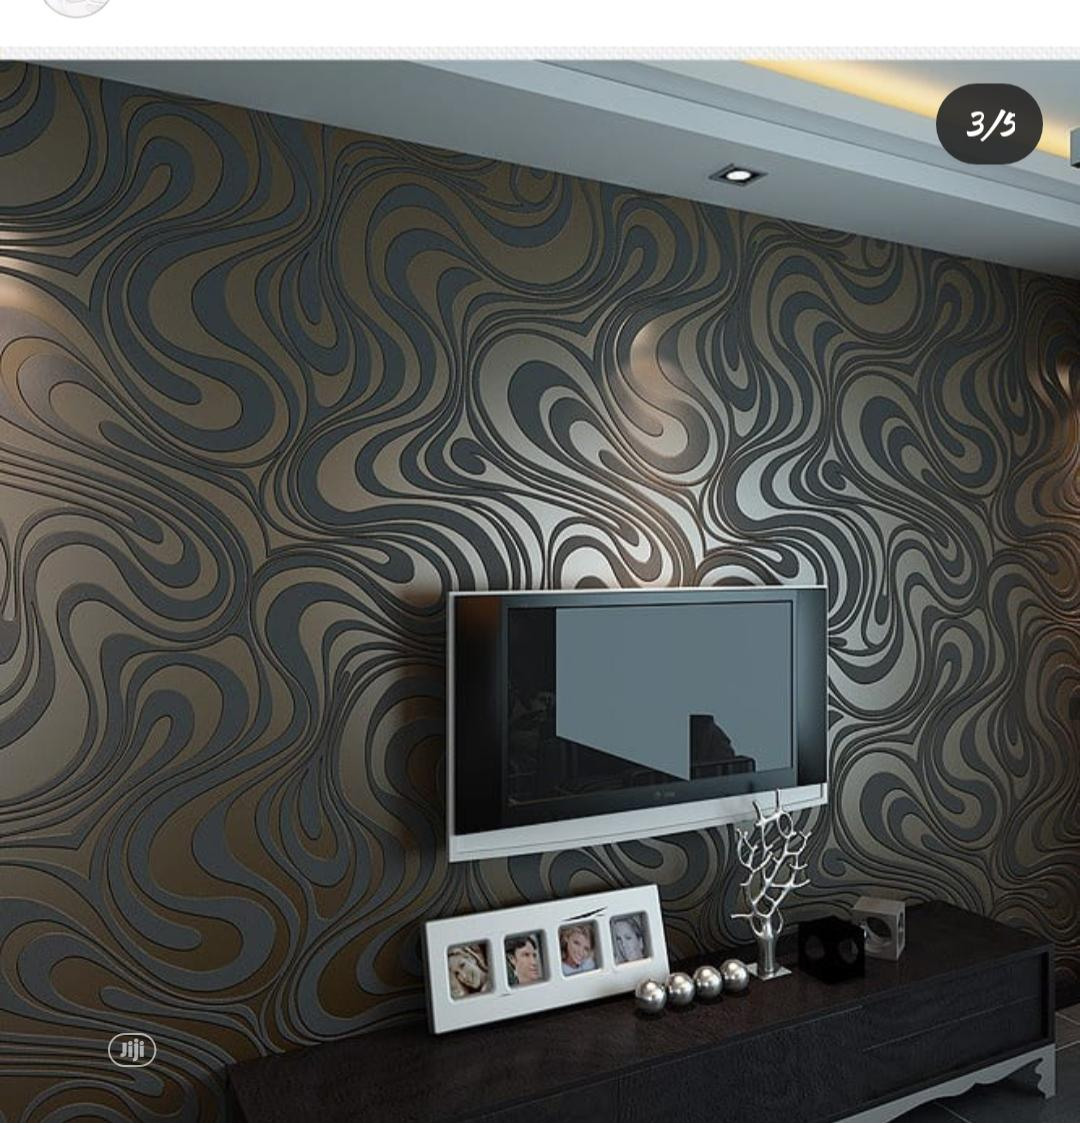 Wallpapers | Home Accessories for sale in Ajah, Lagos State, Nigeria